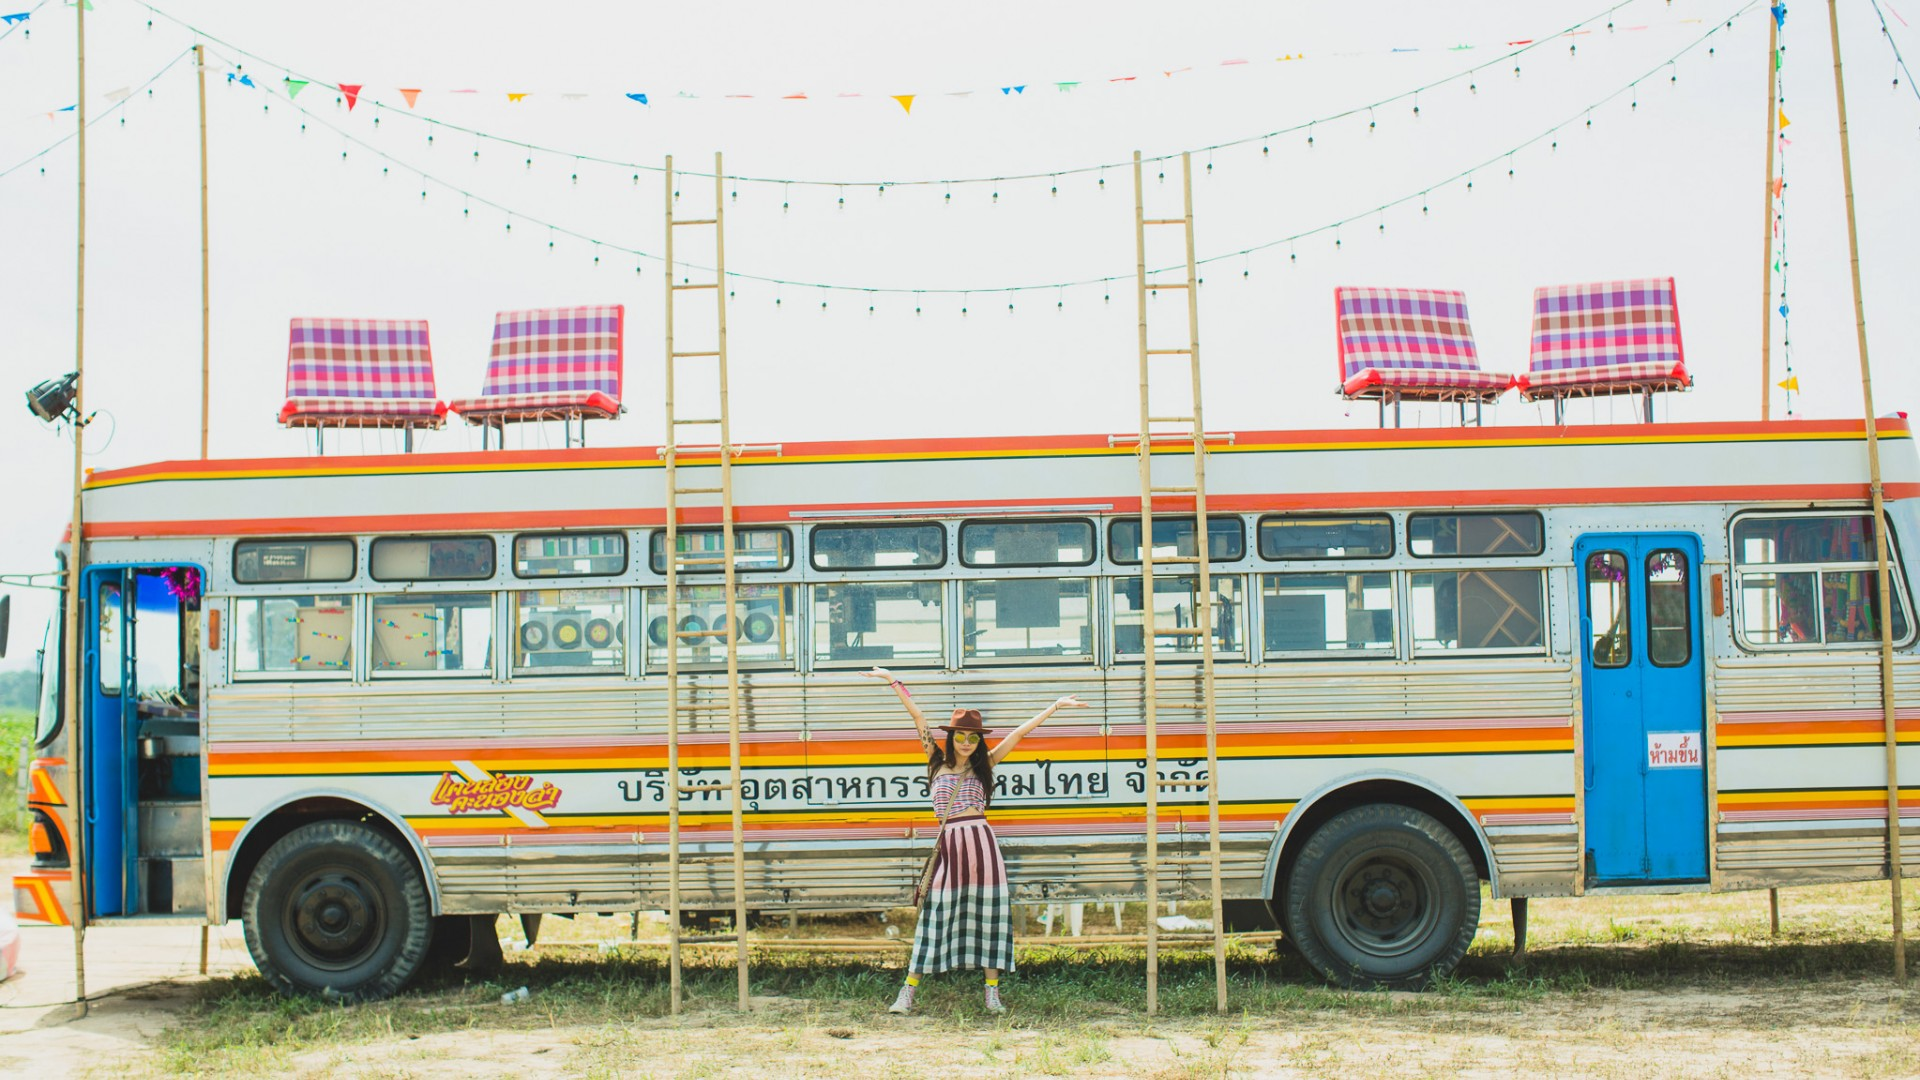 Party bus at Wonderfruit festival